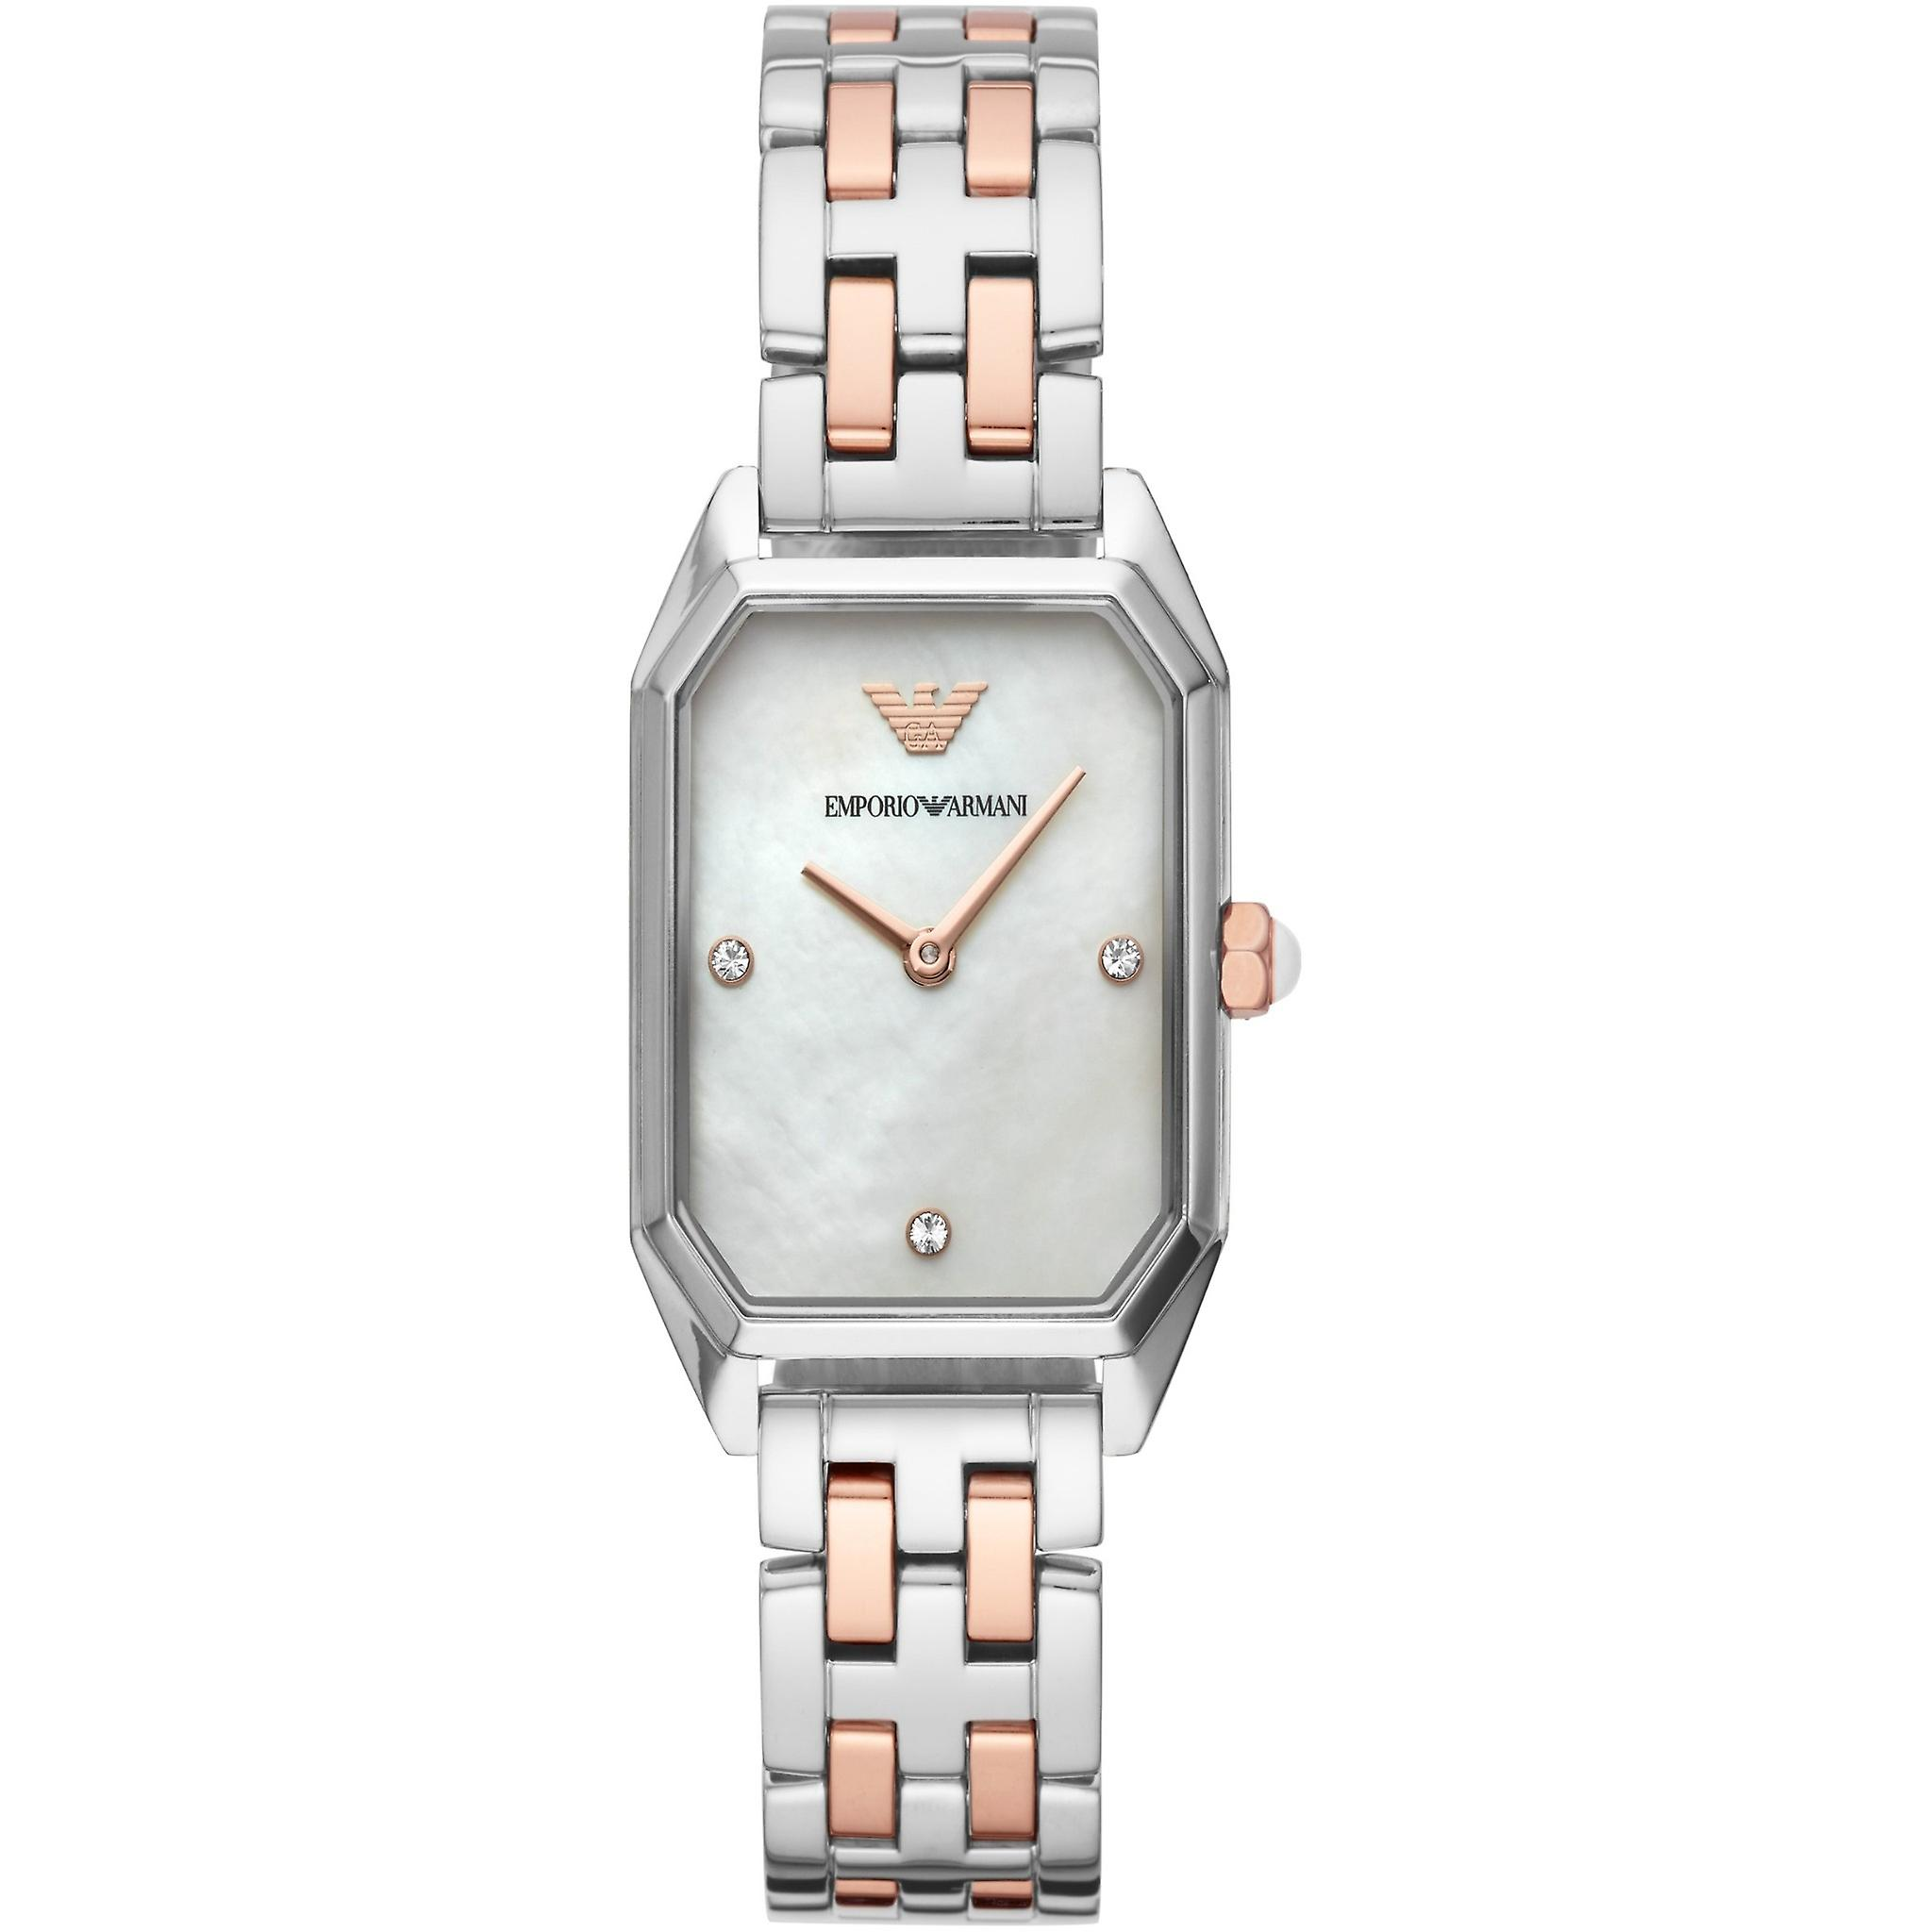 Emporio Armani Ar11146 Gianni T-bar Two Tone Steel Ladies Watches